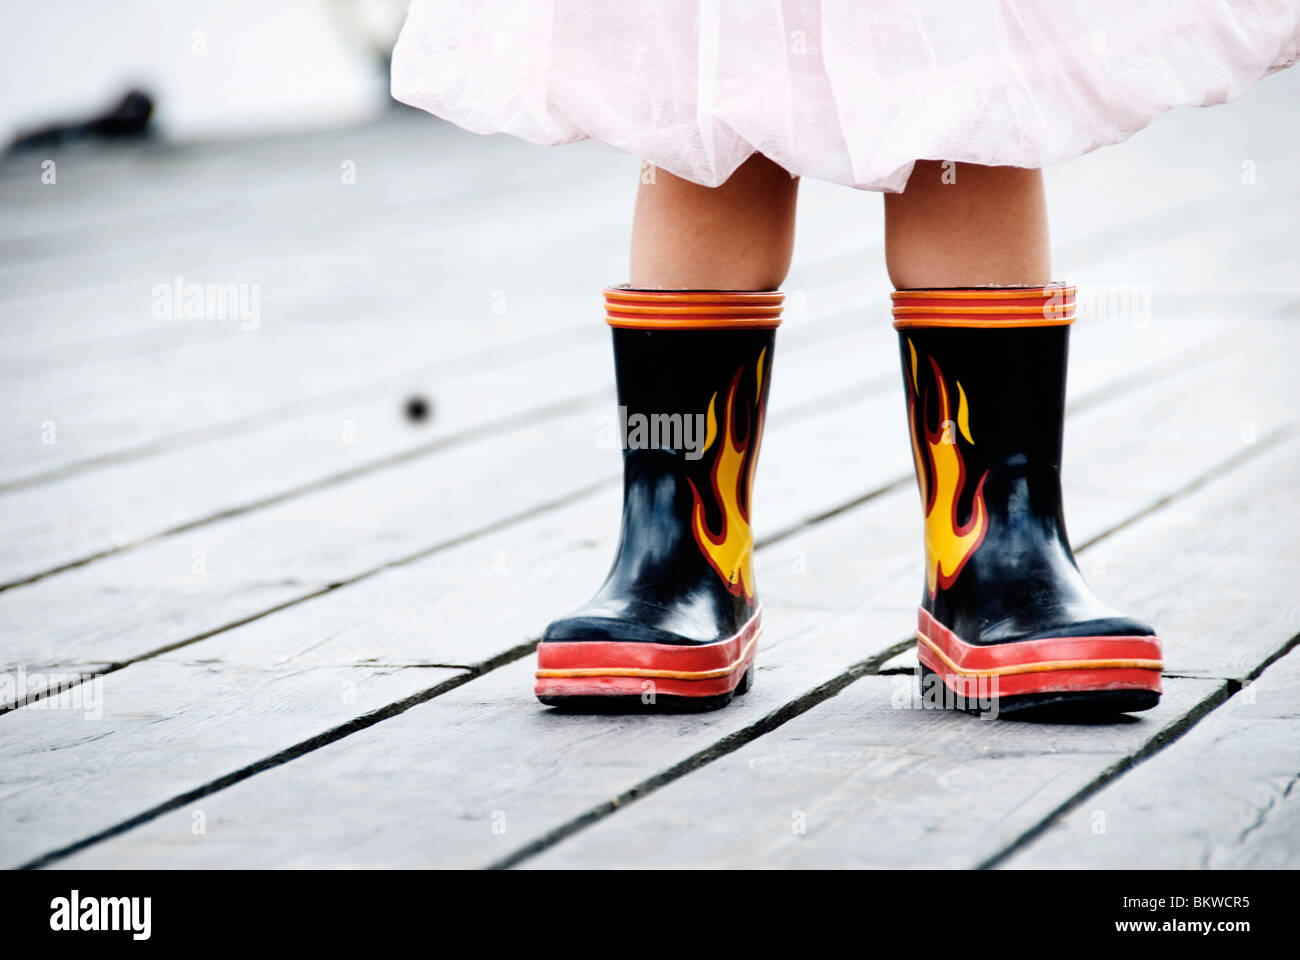 Cool rubber boots - Stock Image